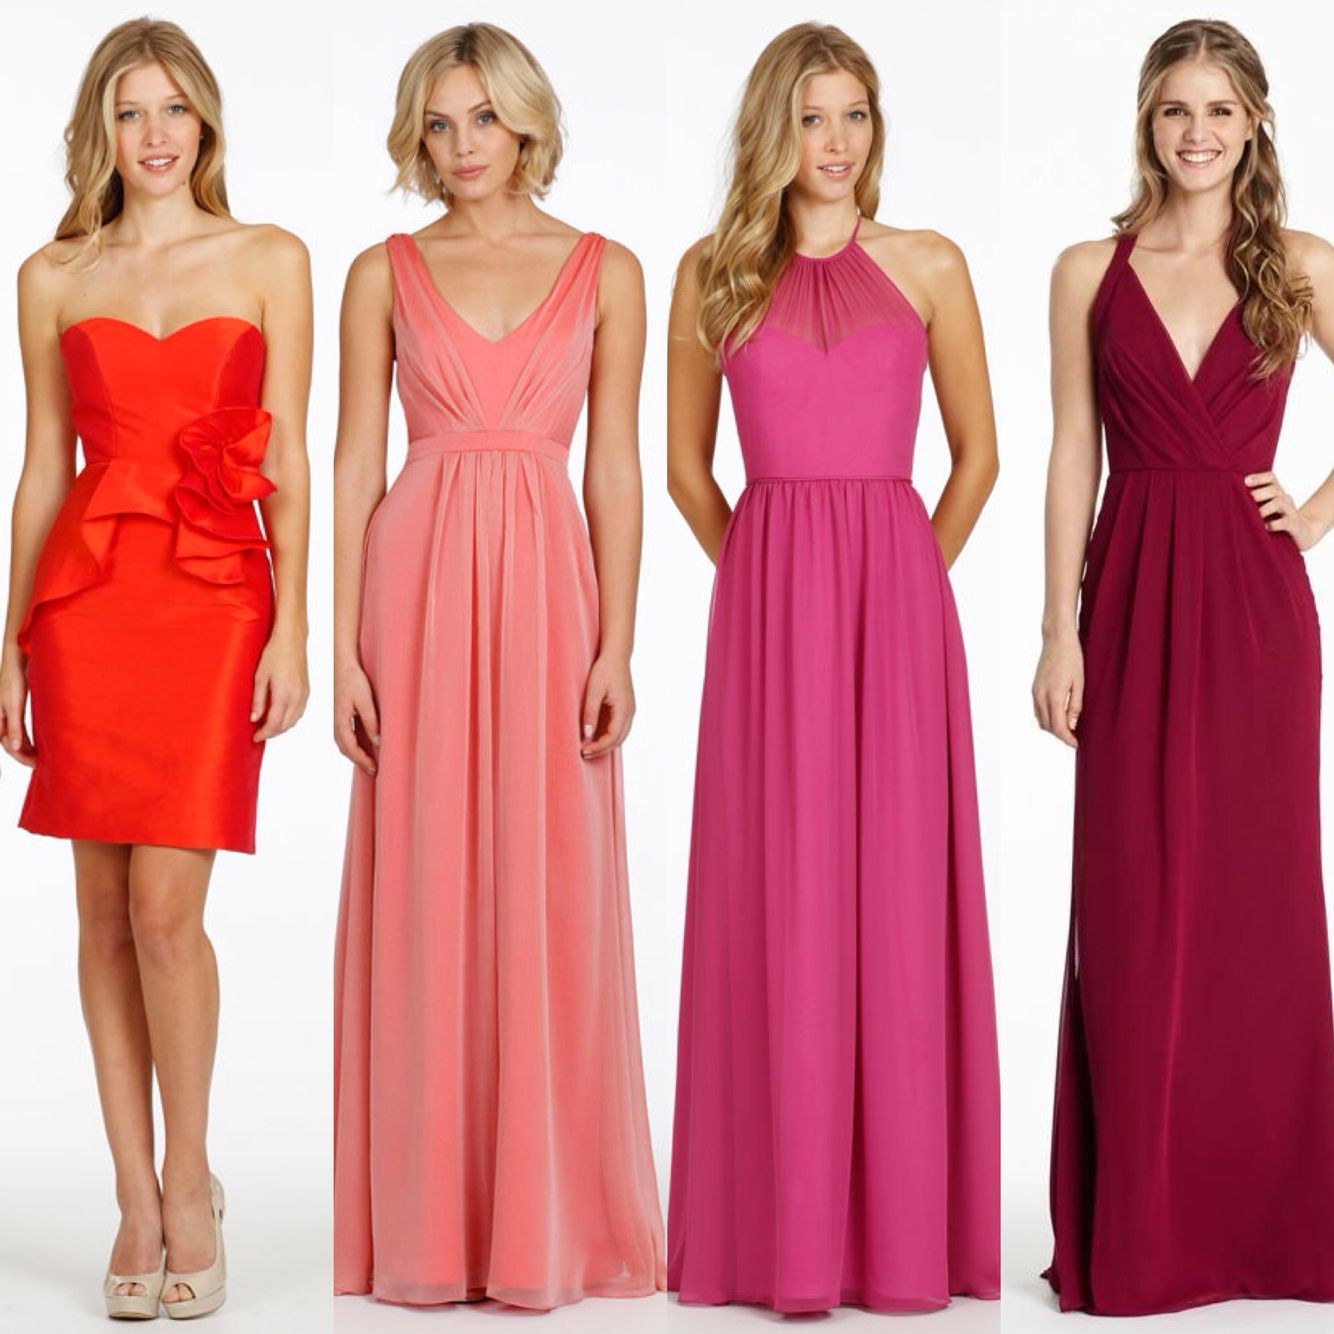 Orange tangerine coral pink raspberry and red cherry colour orange tangerine coral pink raspberry and red cherry colour bridesmaid dresses available to ombrellifo Gallery